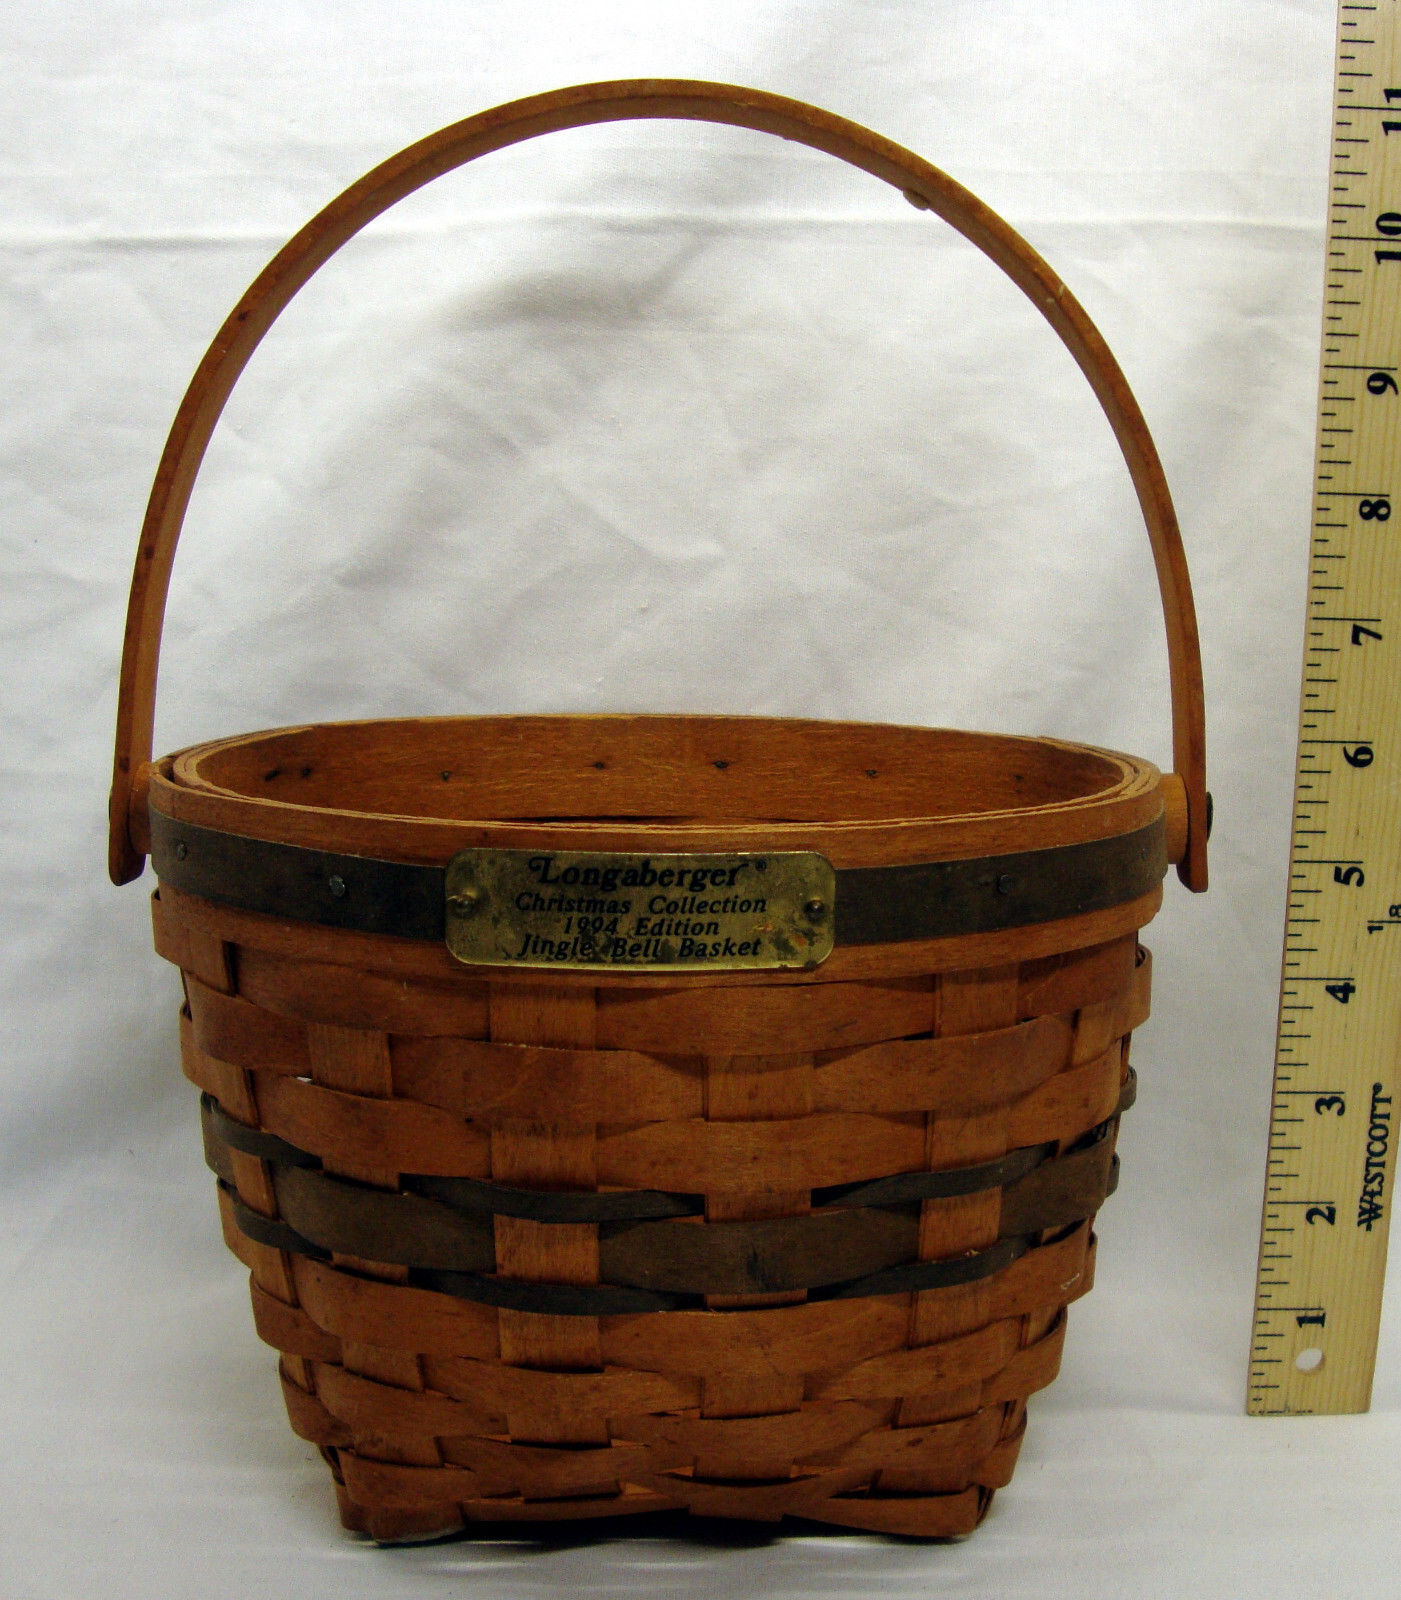 1994 Longaberger Jingle Bell Basket Christmas Collection w/ Liner and Protector